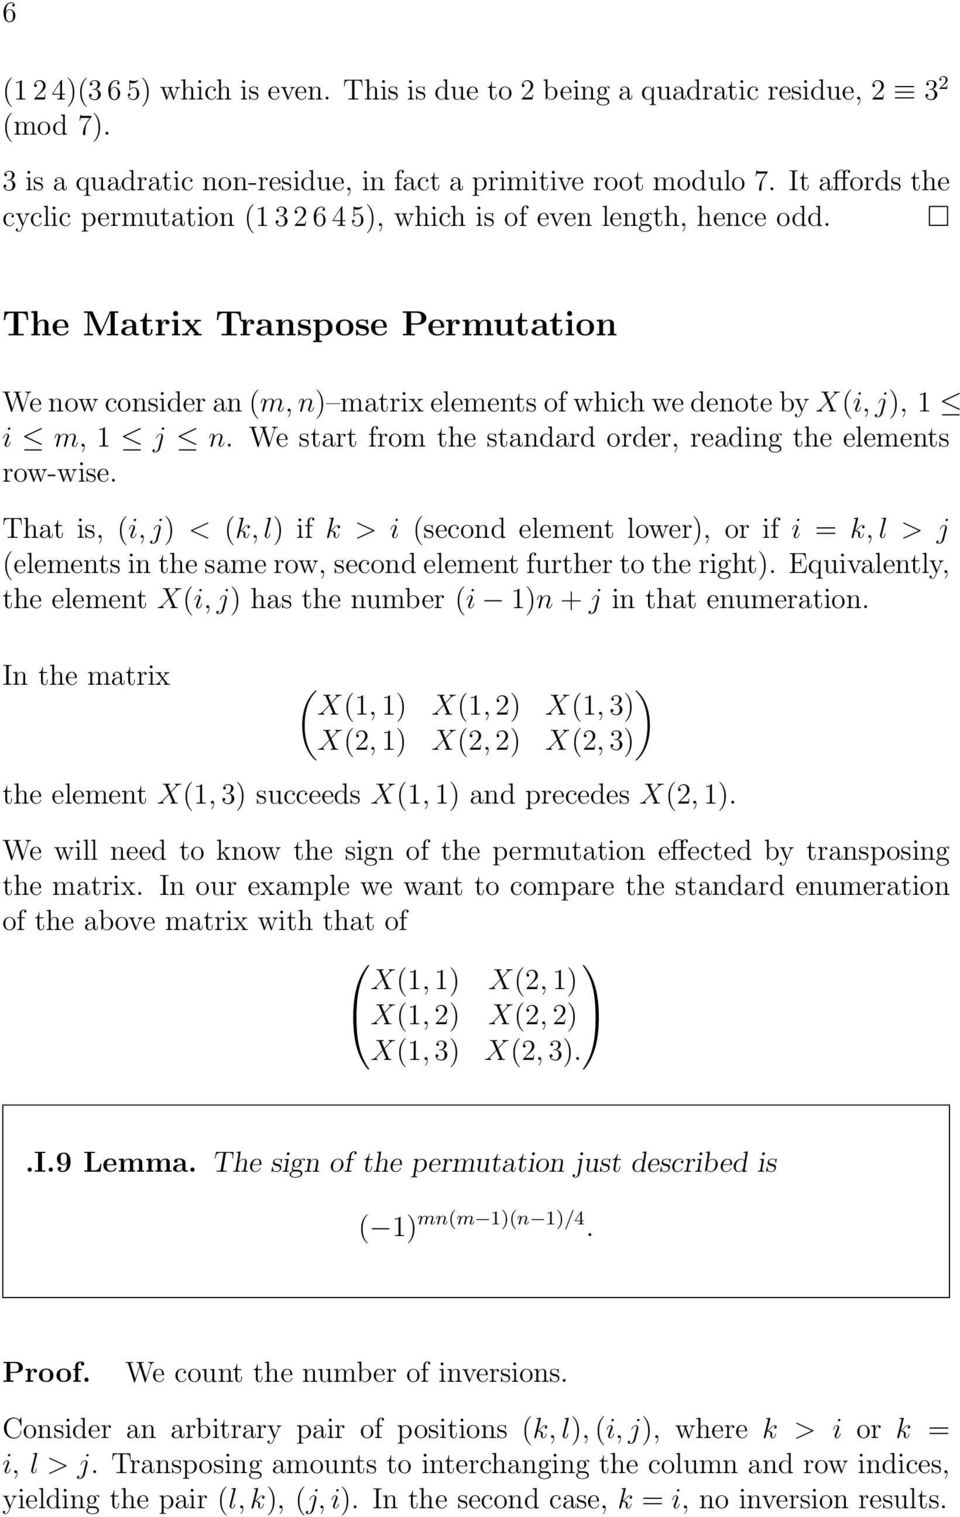 The Matrix Transpose Permutation We now consider an (m, n) matrix elements of which we denote by X(i, j), 1 i m, 1 j n. We start from the standard order, reading the elements row-wise.